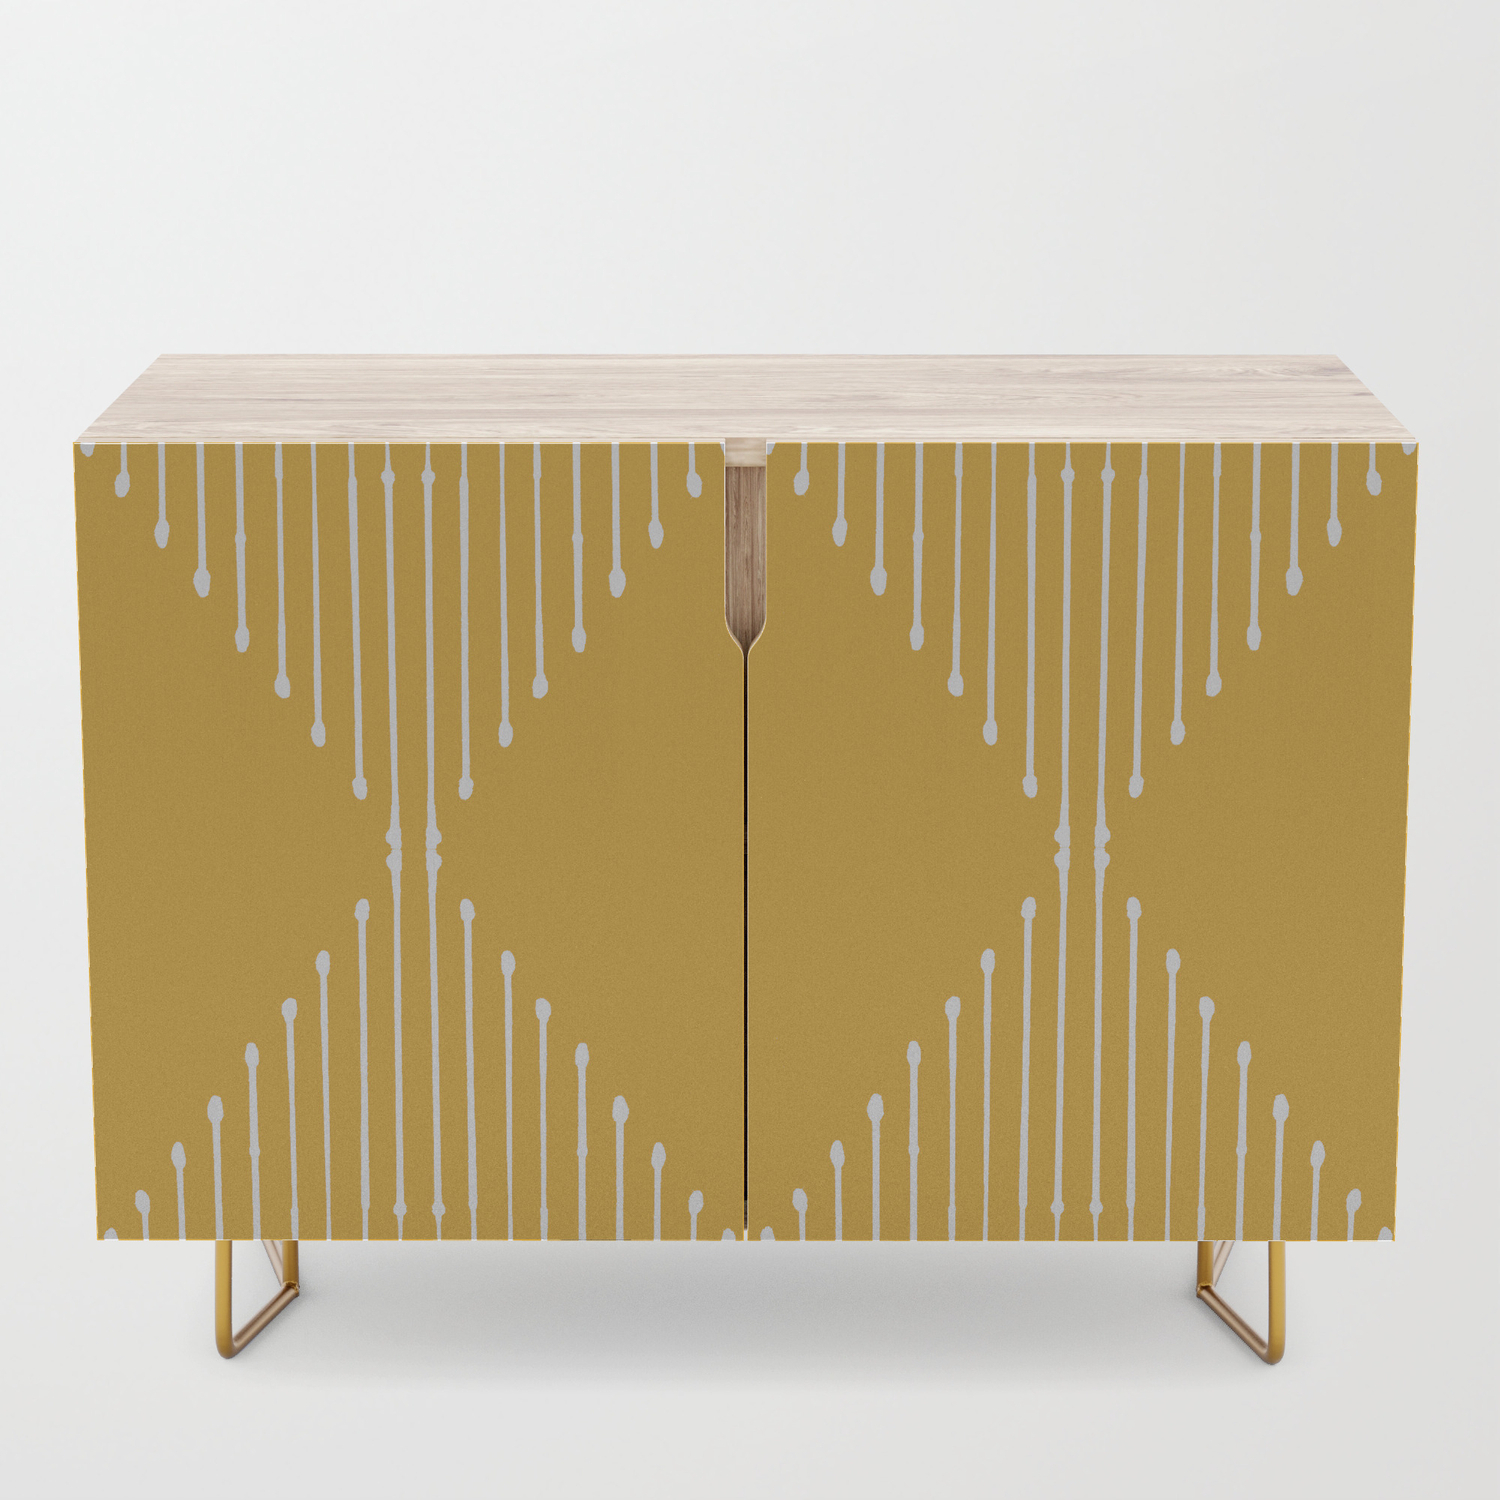 Geo / Yellow Credenza Within Line Geo Credenzas (View 15 of 30)